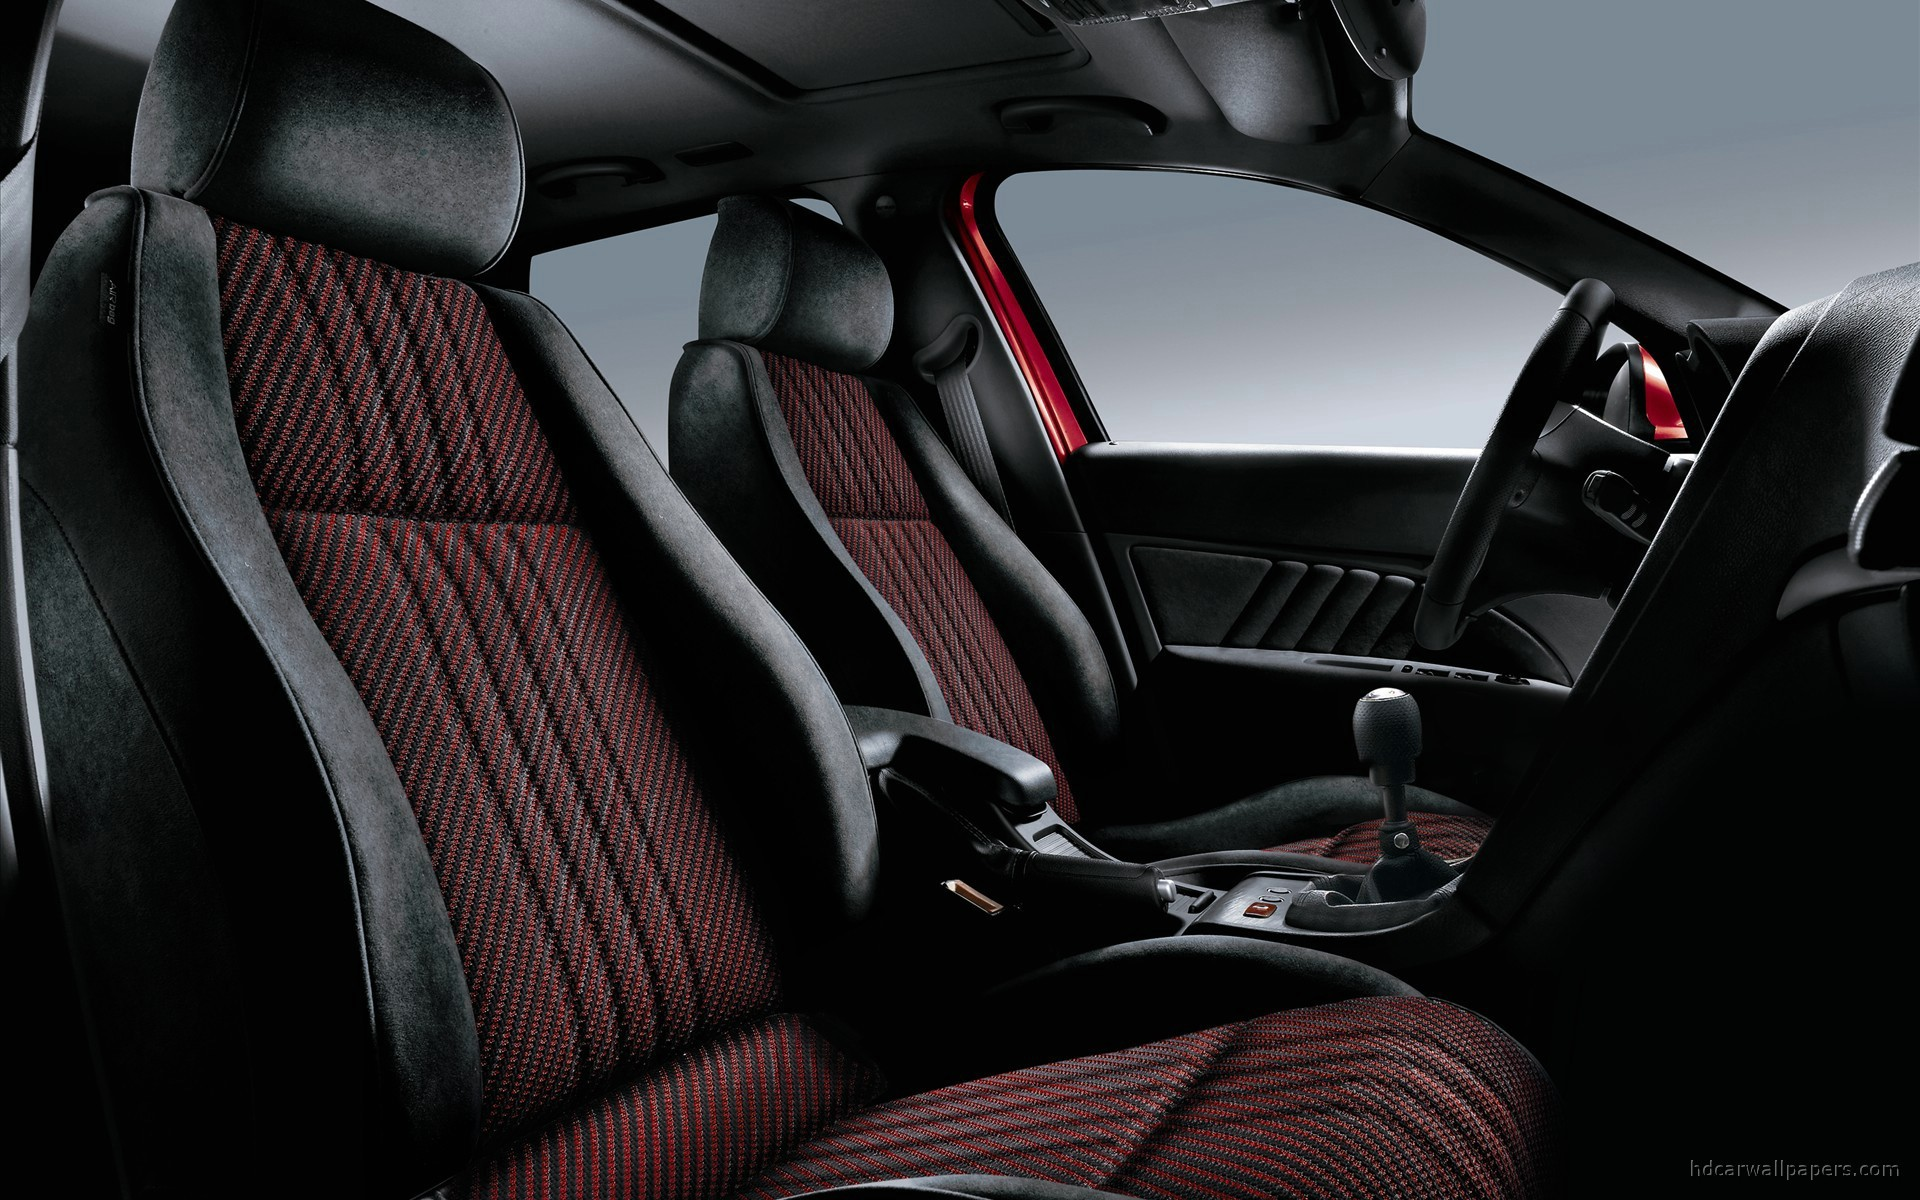 2009 alfa romeo 159 interior wallpaper hd car wallpapers id 17. Black Bedroom Furniture Sets. Home Design Ideas